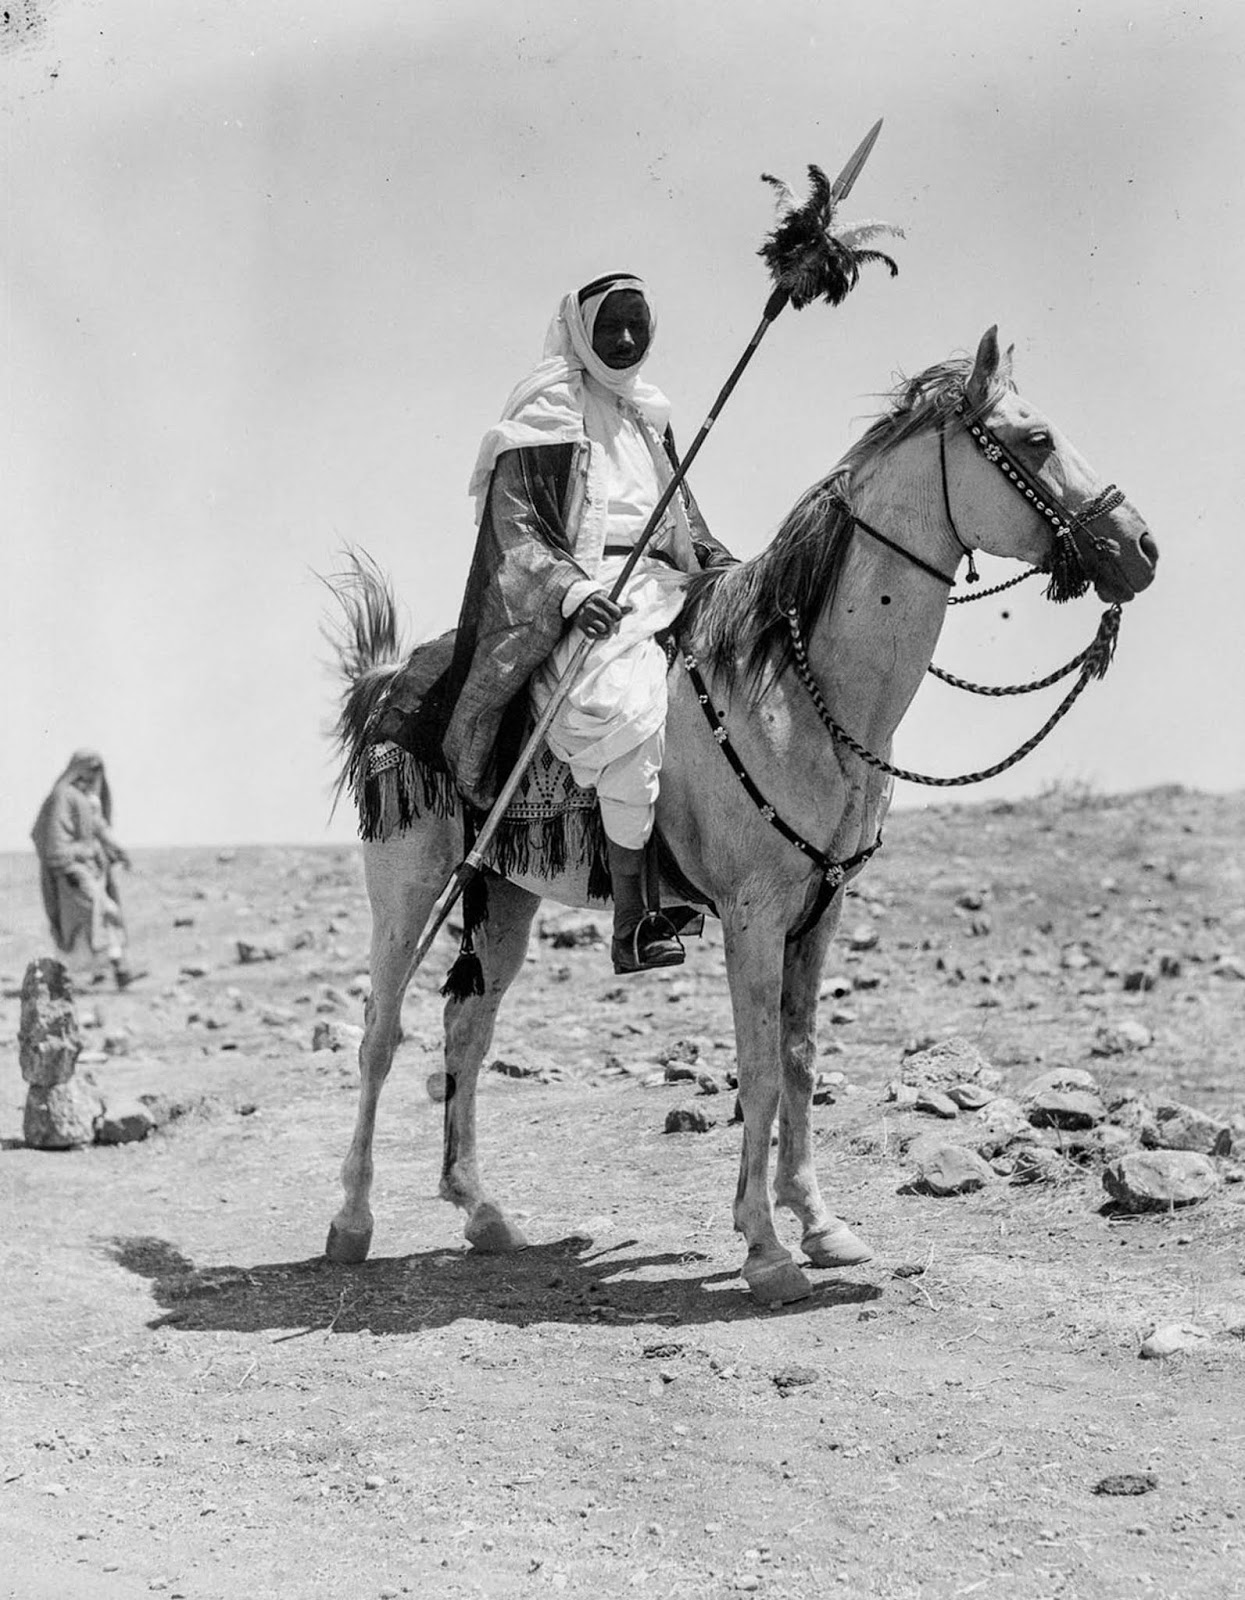 A Bedouin man riding his horse.